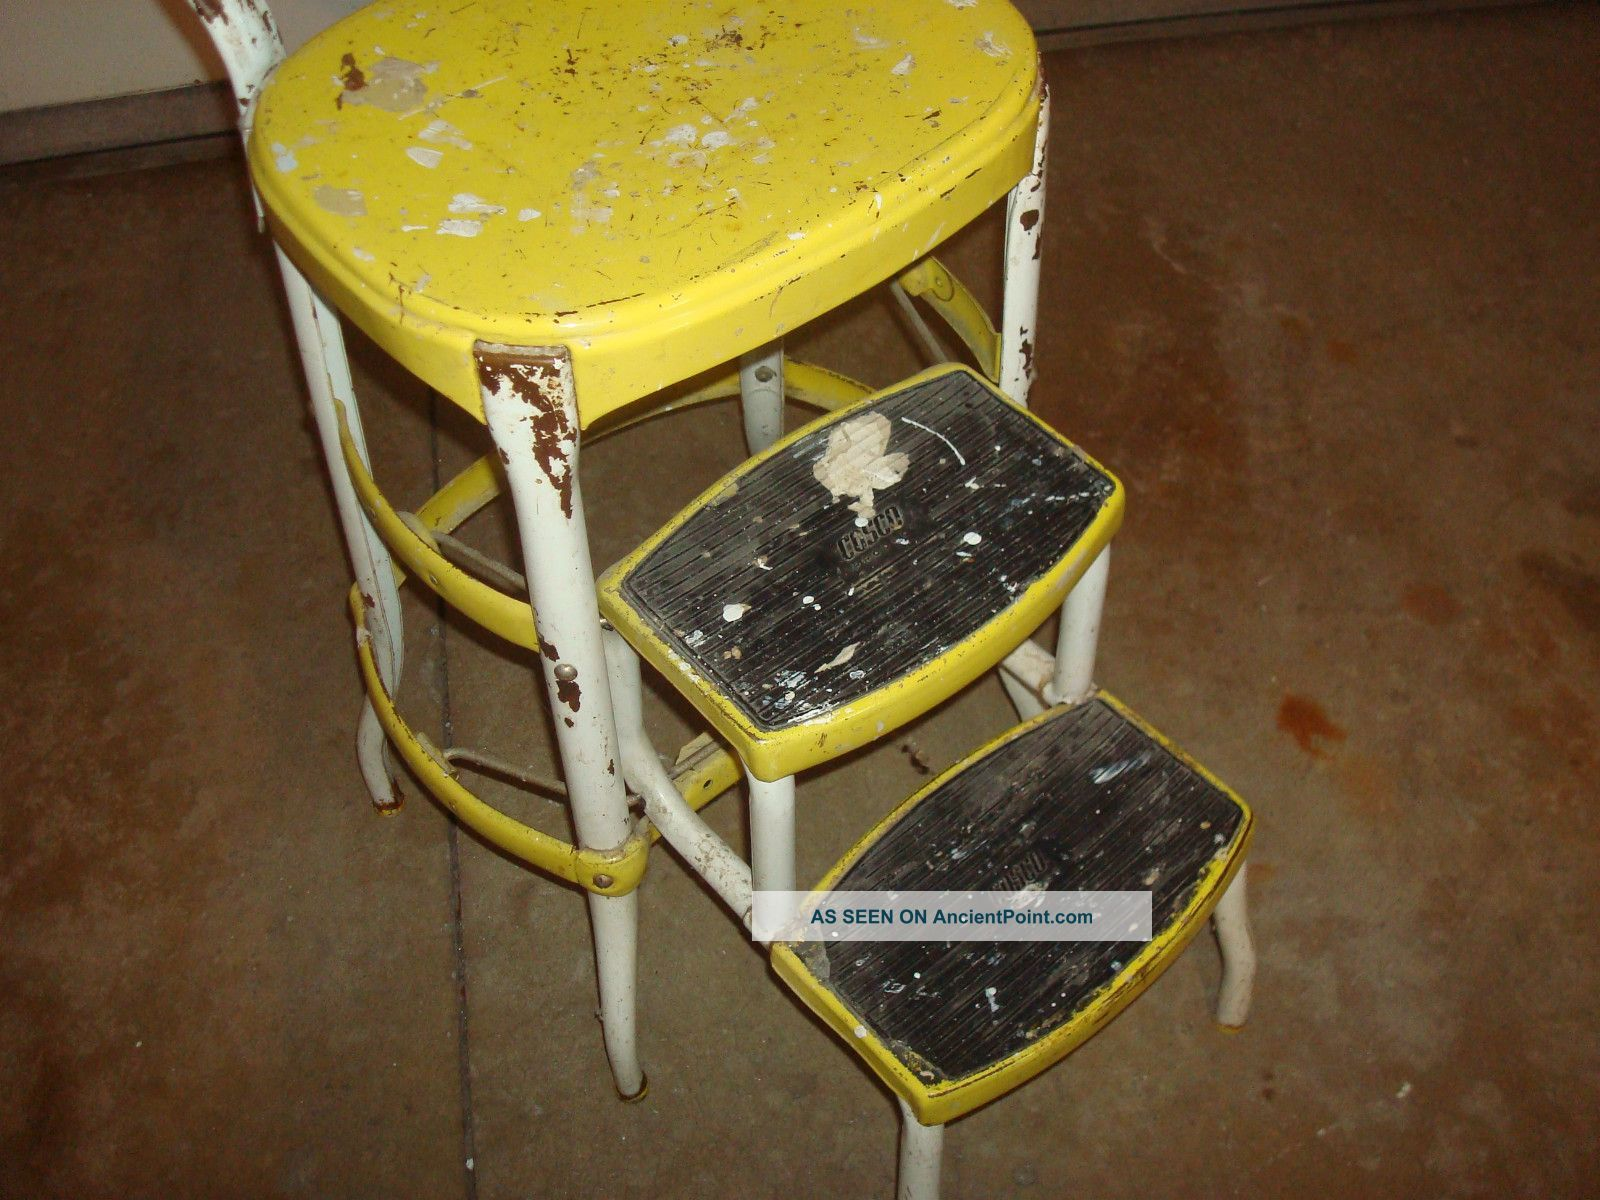 cosco step stools chairs | Vintage Retro Yellow Cosco Step Stool Mid - Century Kitchen Steel : cosco steel step stool 3 step - islam-shia.org